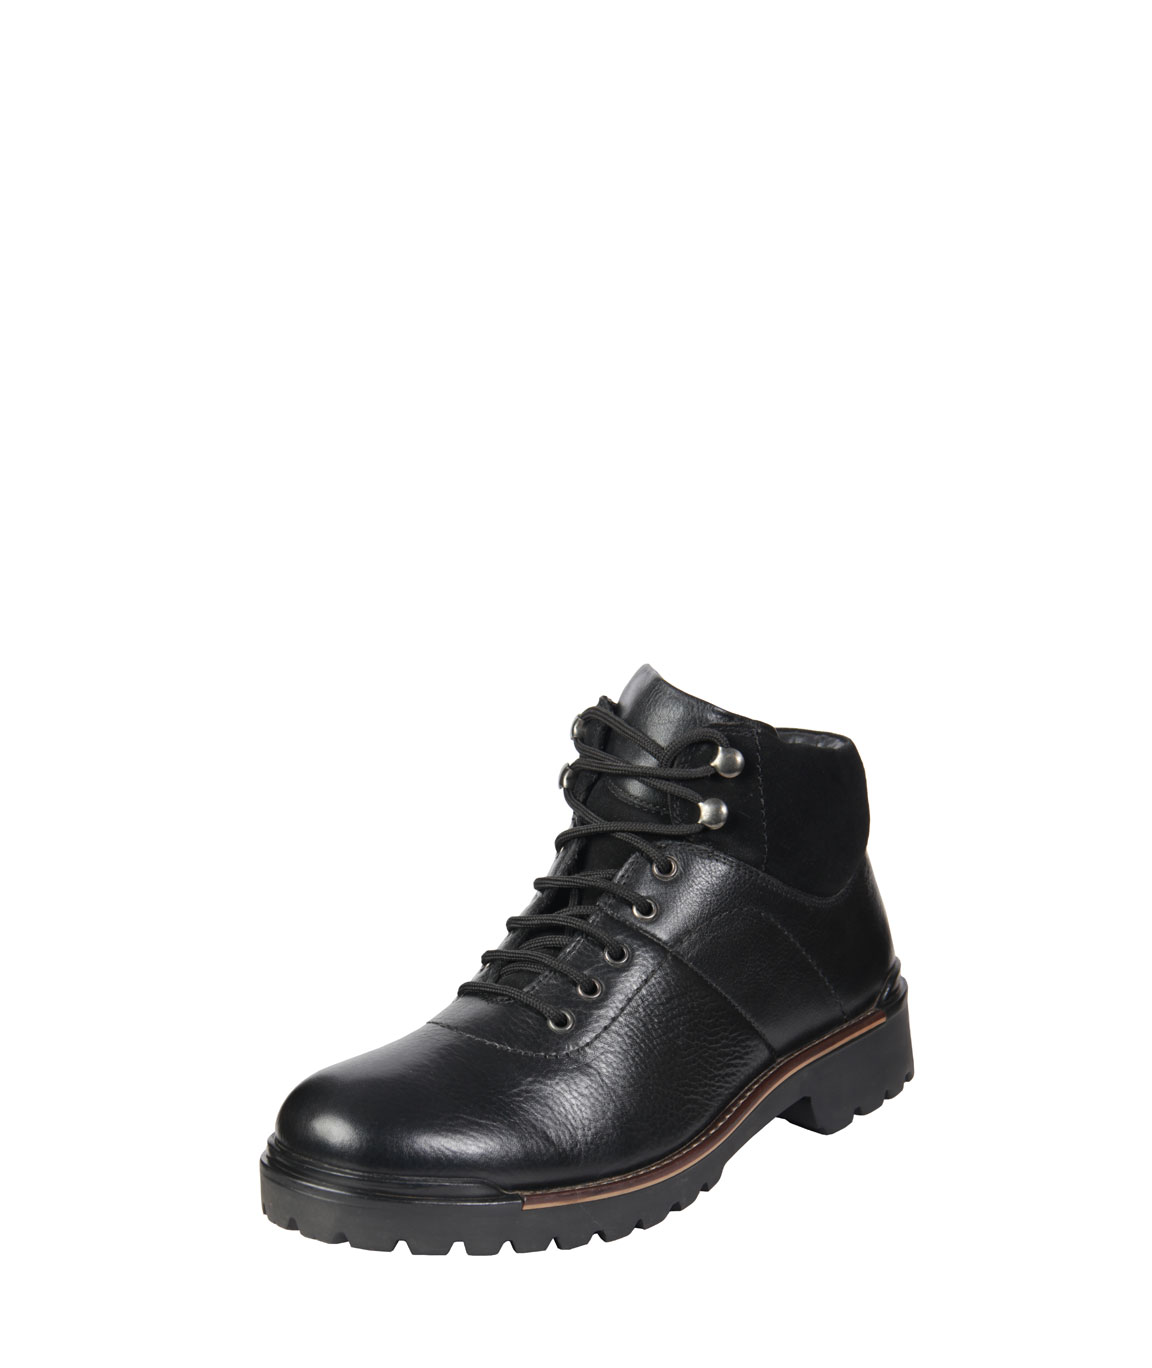 Mens Boots For Riding